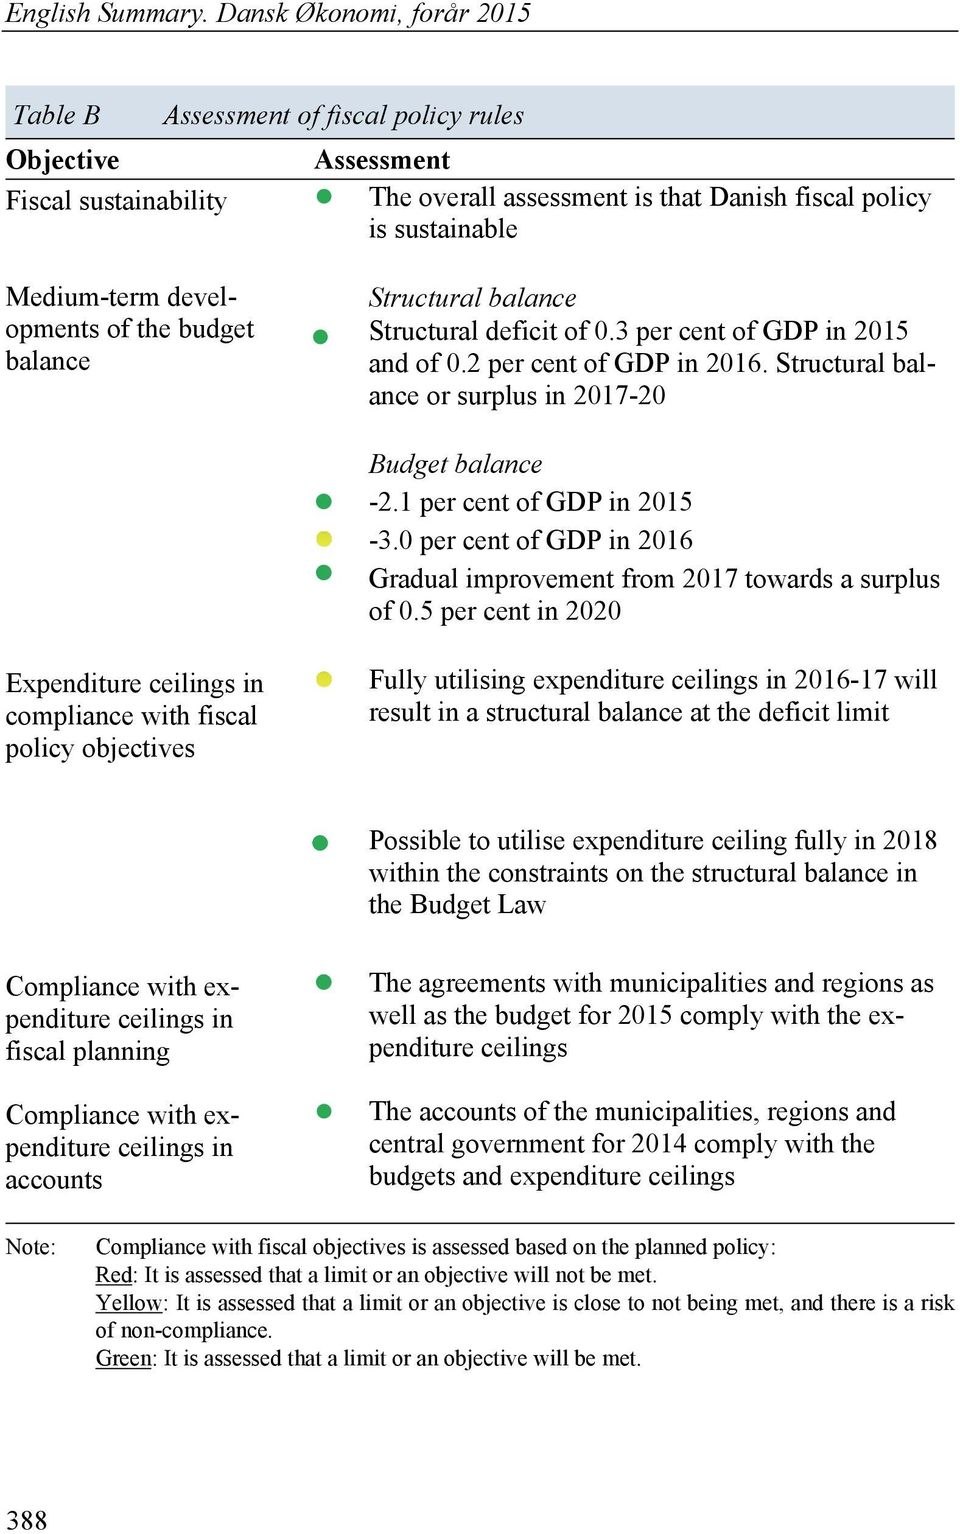 developments of the budget balance Structural balance Structural deficit of 0.3 per cent of GDP in 2015 and of 0.2 per cent of GDP in 2016. Structural balance or surplus in 2017-20 Budget balance -2.